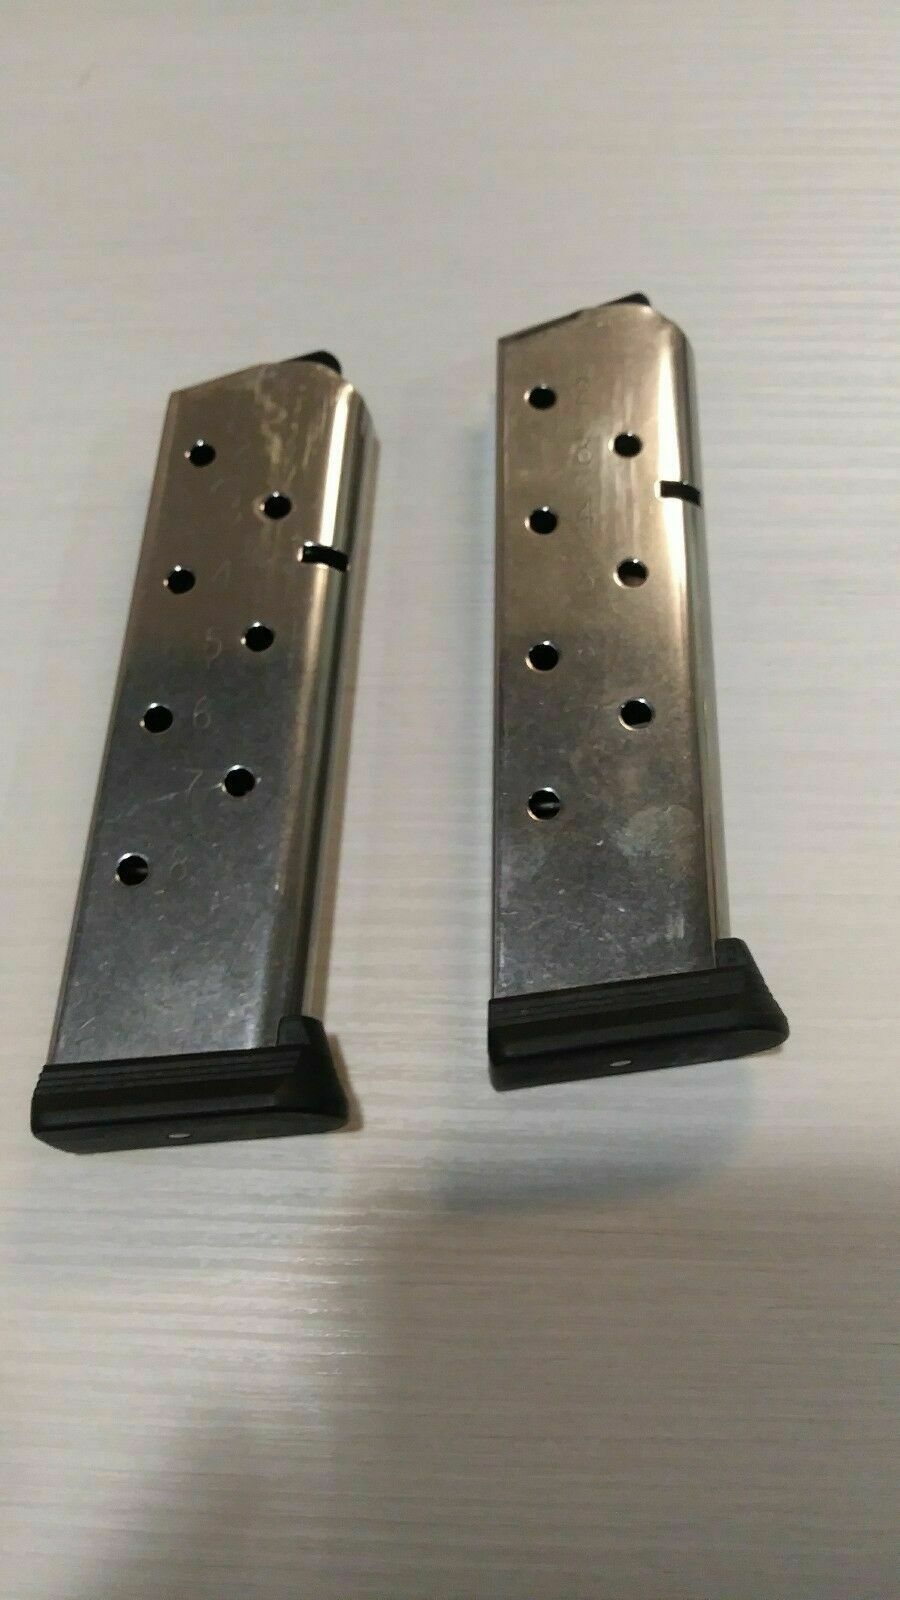 Pair of Checkmate 1911 magazines 45 acp 8rd extended body ETM -- mag #57